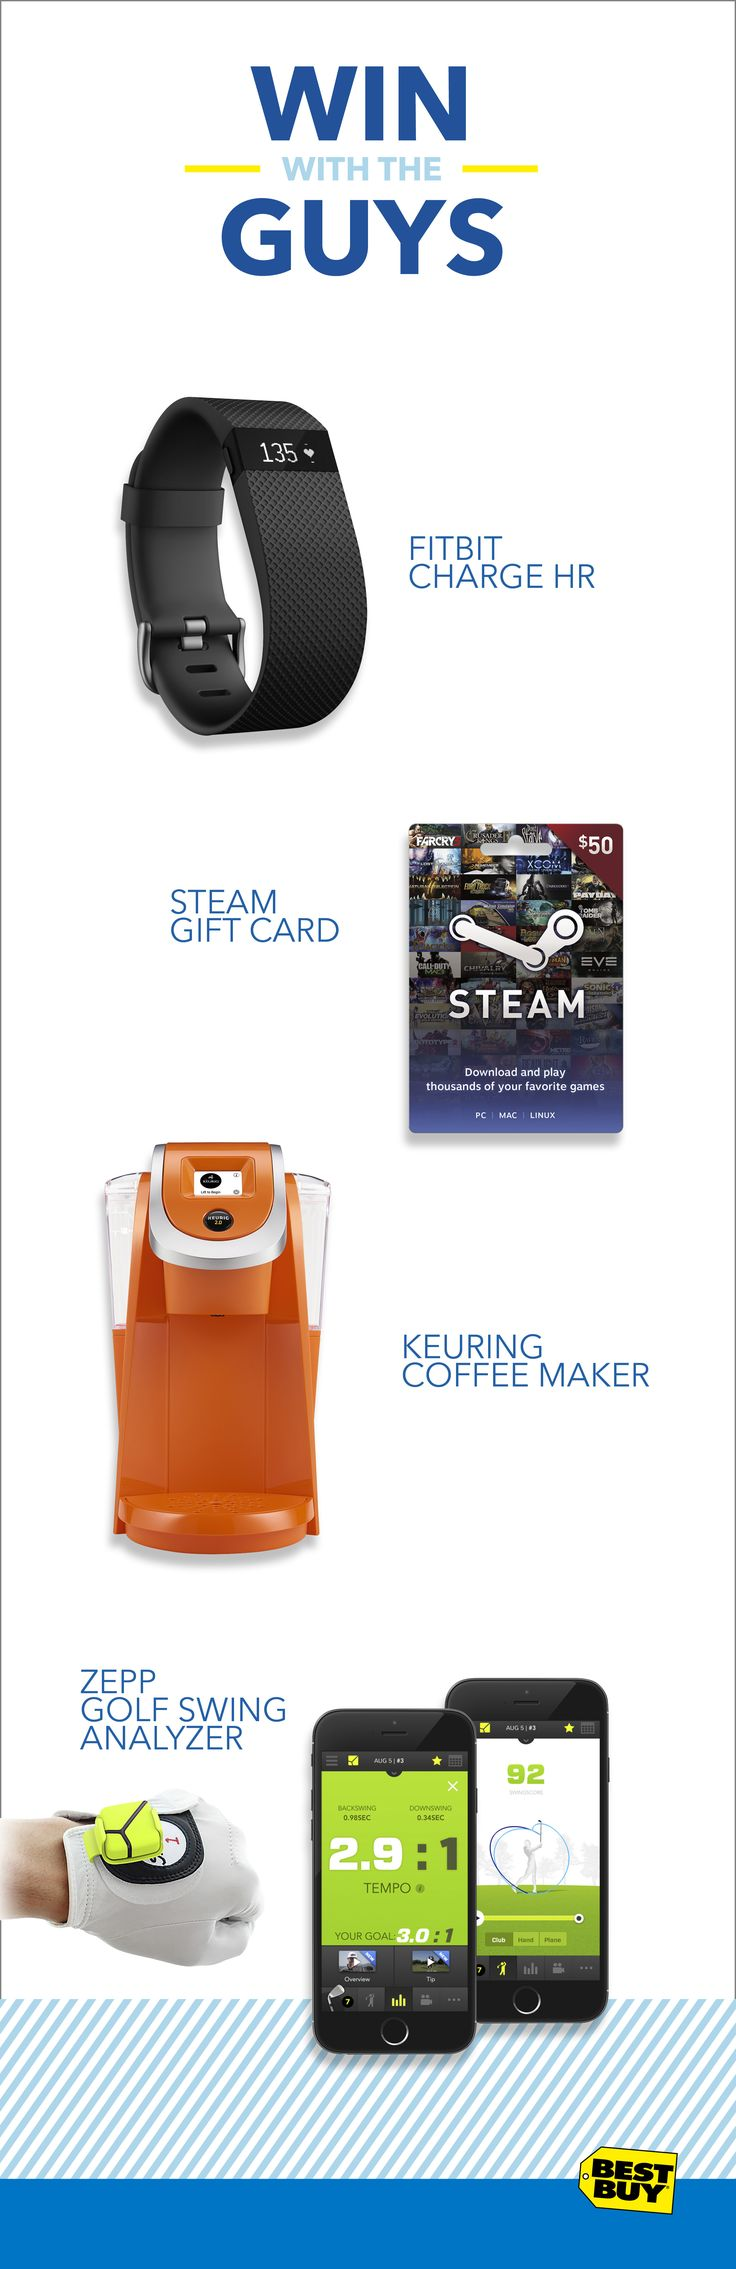 Whoever told you winning wasn't everything probably never got their holiday bell rung with the perfect man-gift. Husbands, dads,brothers, boyfriends, we've got them all covered. Win the holidays with everything from a Keurig Coffee Maker, to a gaming Steam Card, or perfect their game with the MiCoach Smart Soccer Ball or Golf Swing Analyzer, and thousands more.